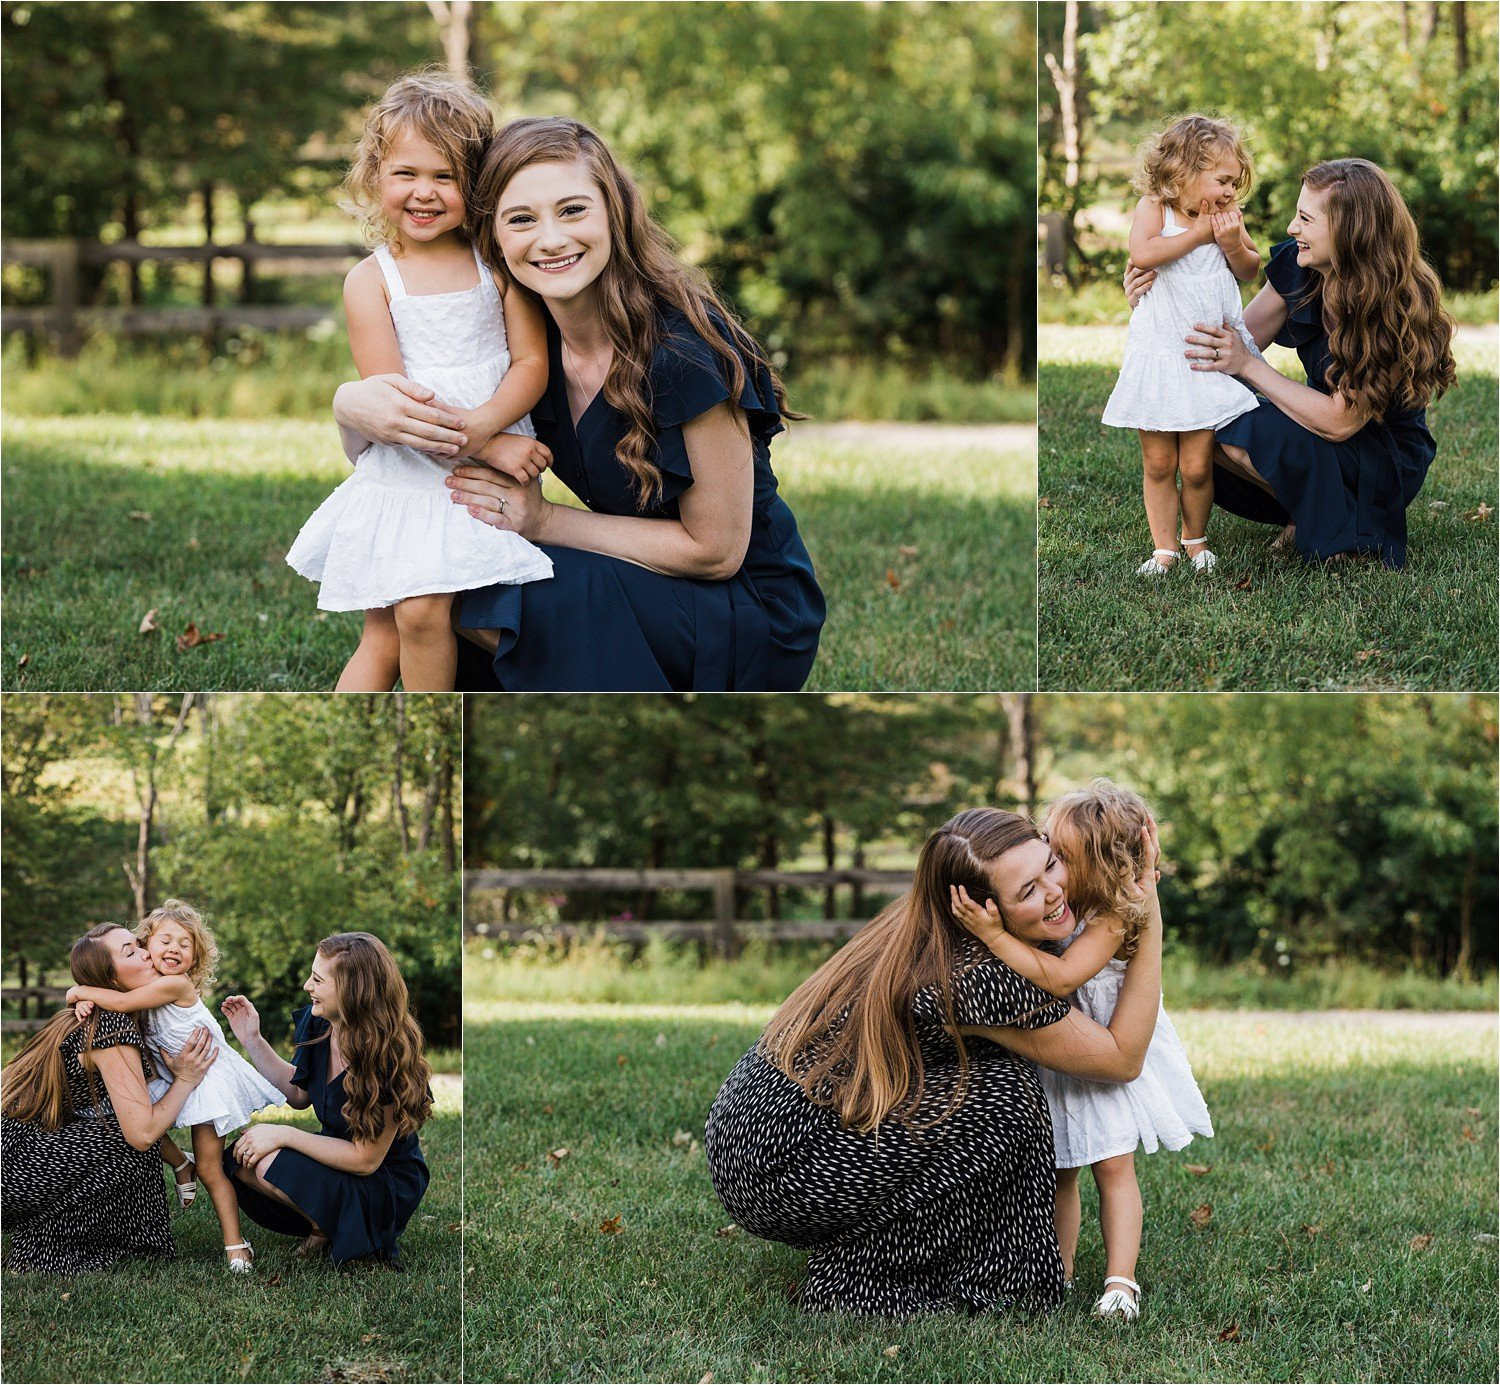 photos of littl girl with her mom and aunt